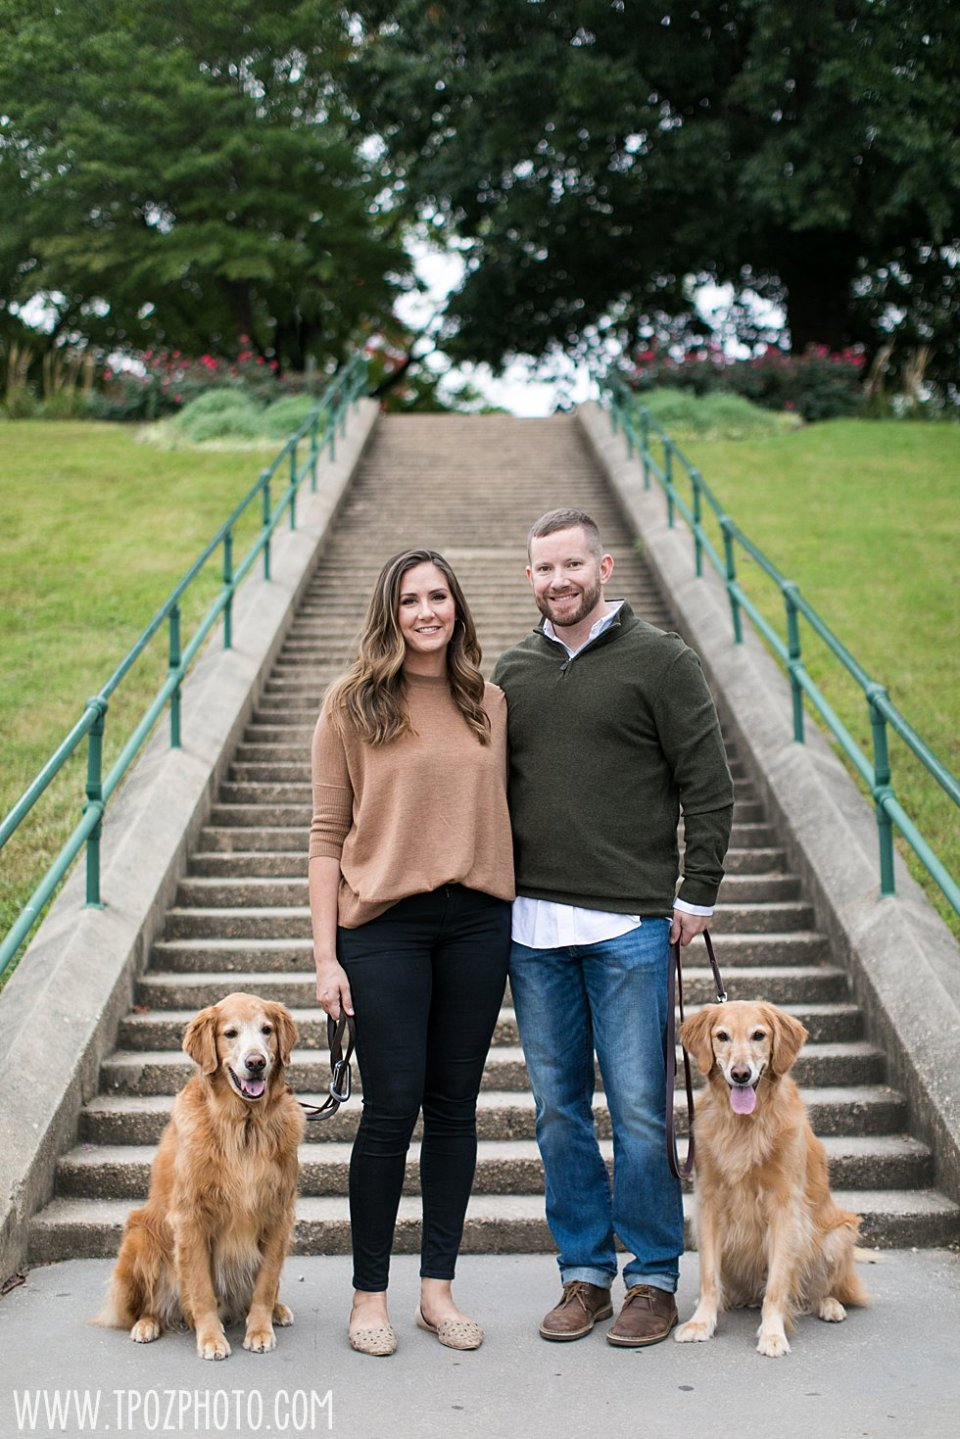 Baltimore couple and their 2 dogs •tPoz Photography  •www.tpozphoto.com